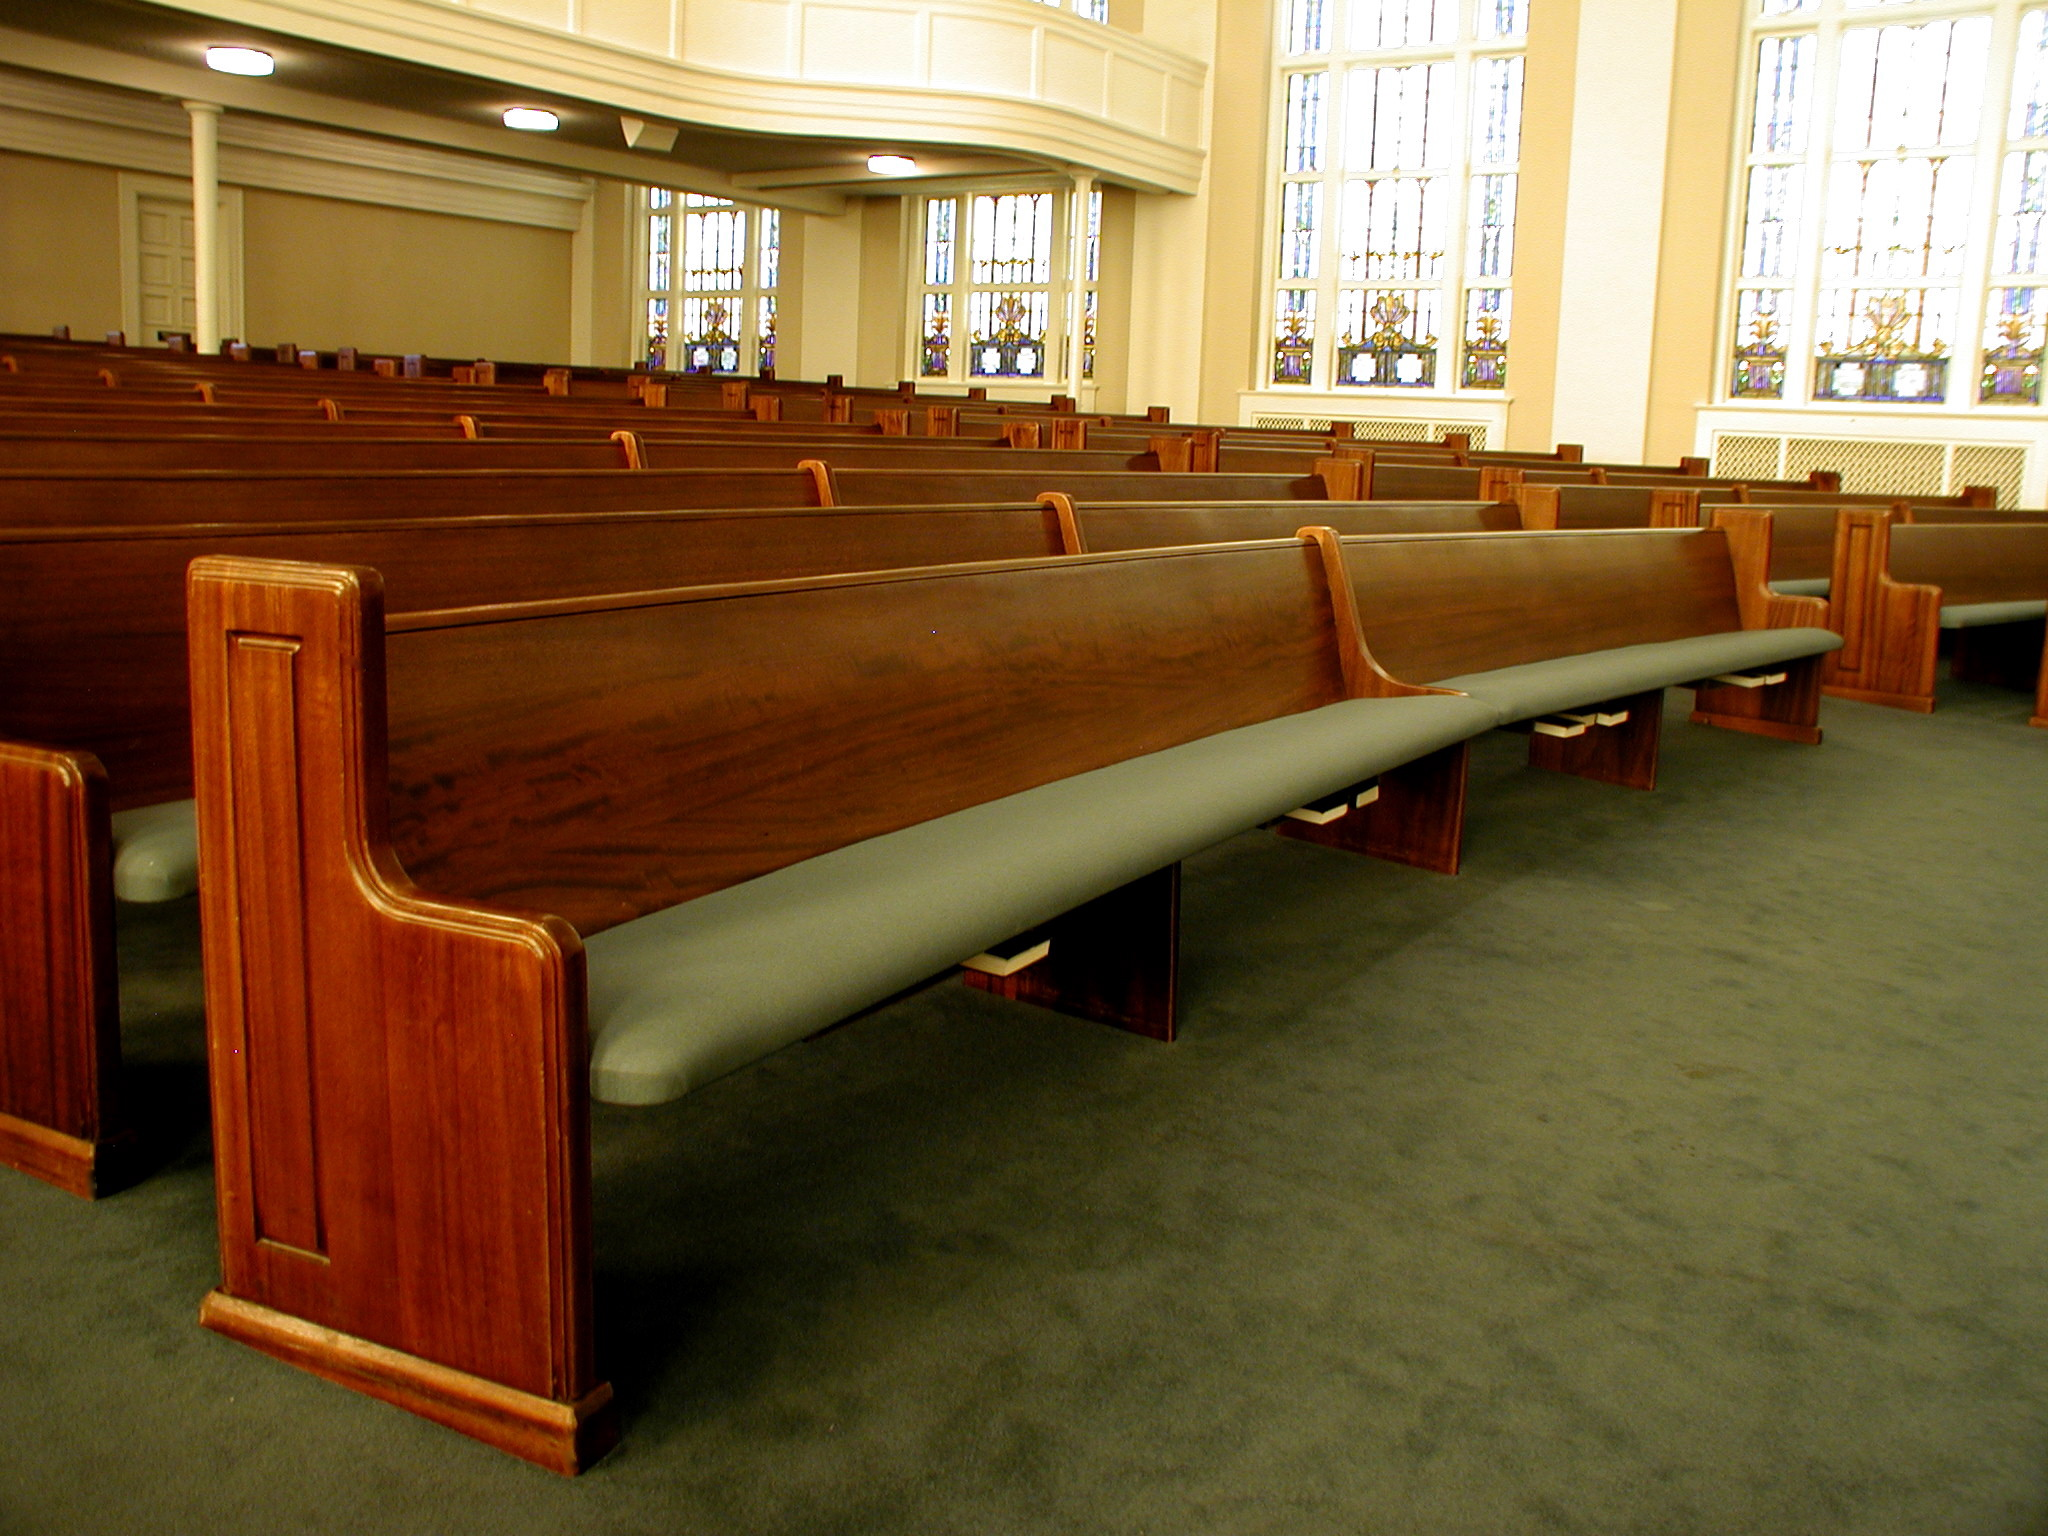 Pew Upholstery Church Pew Cushions